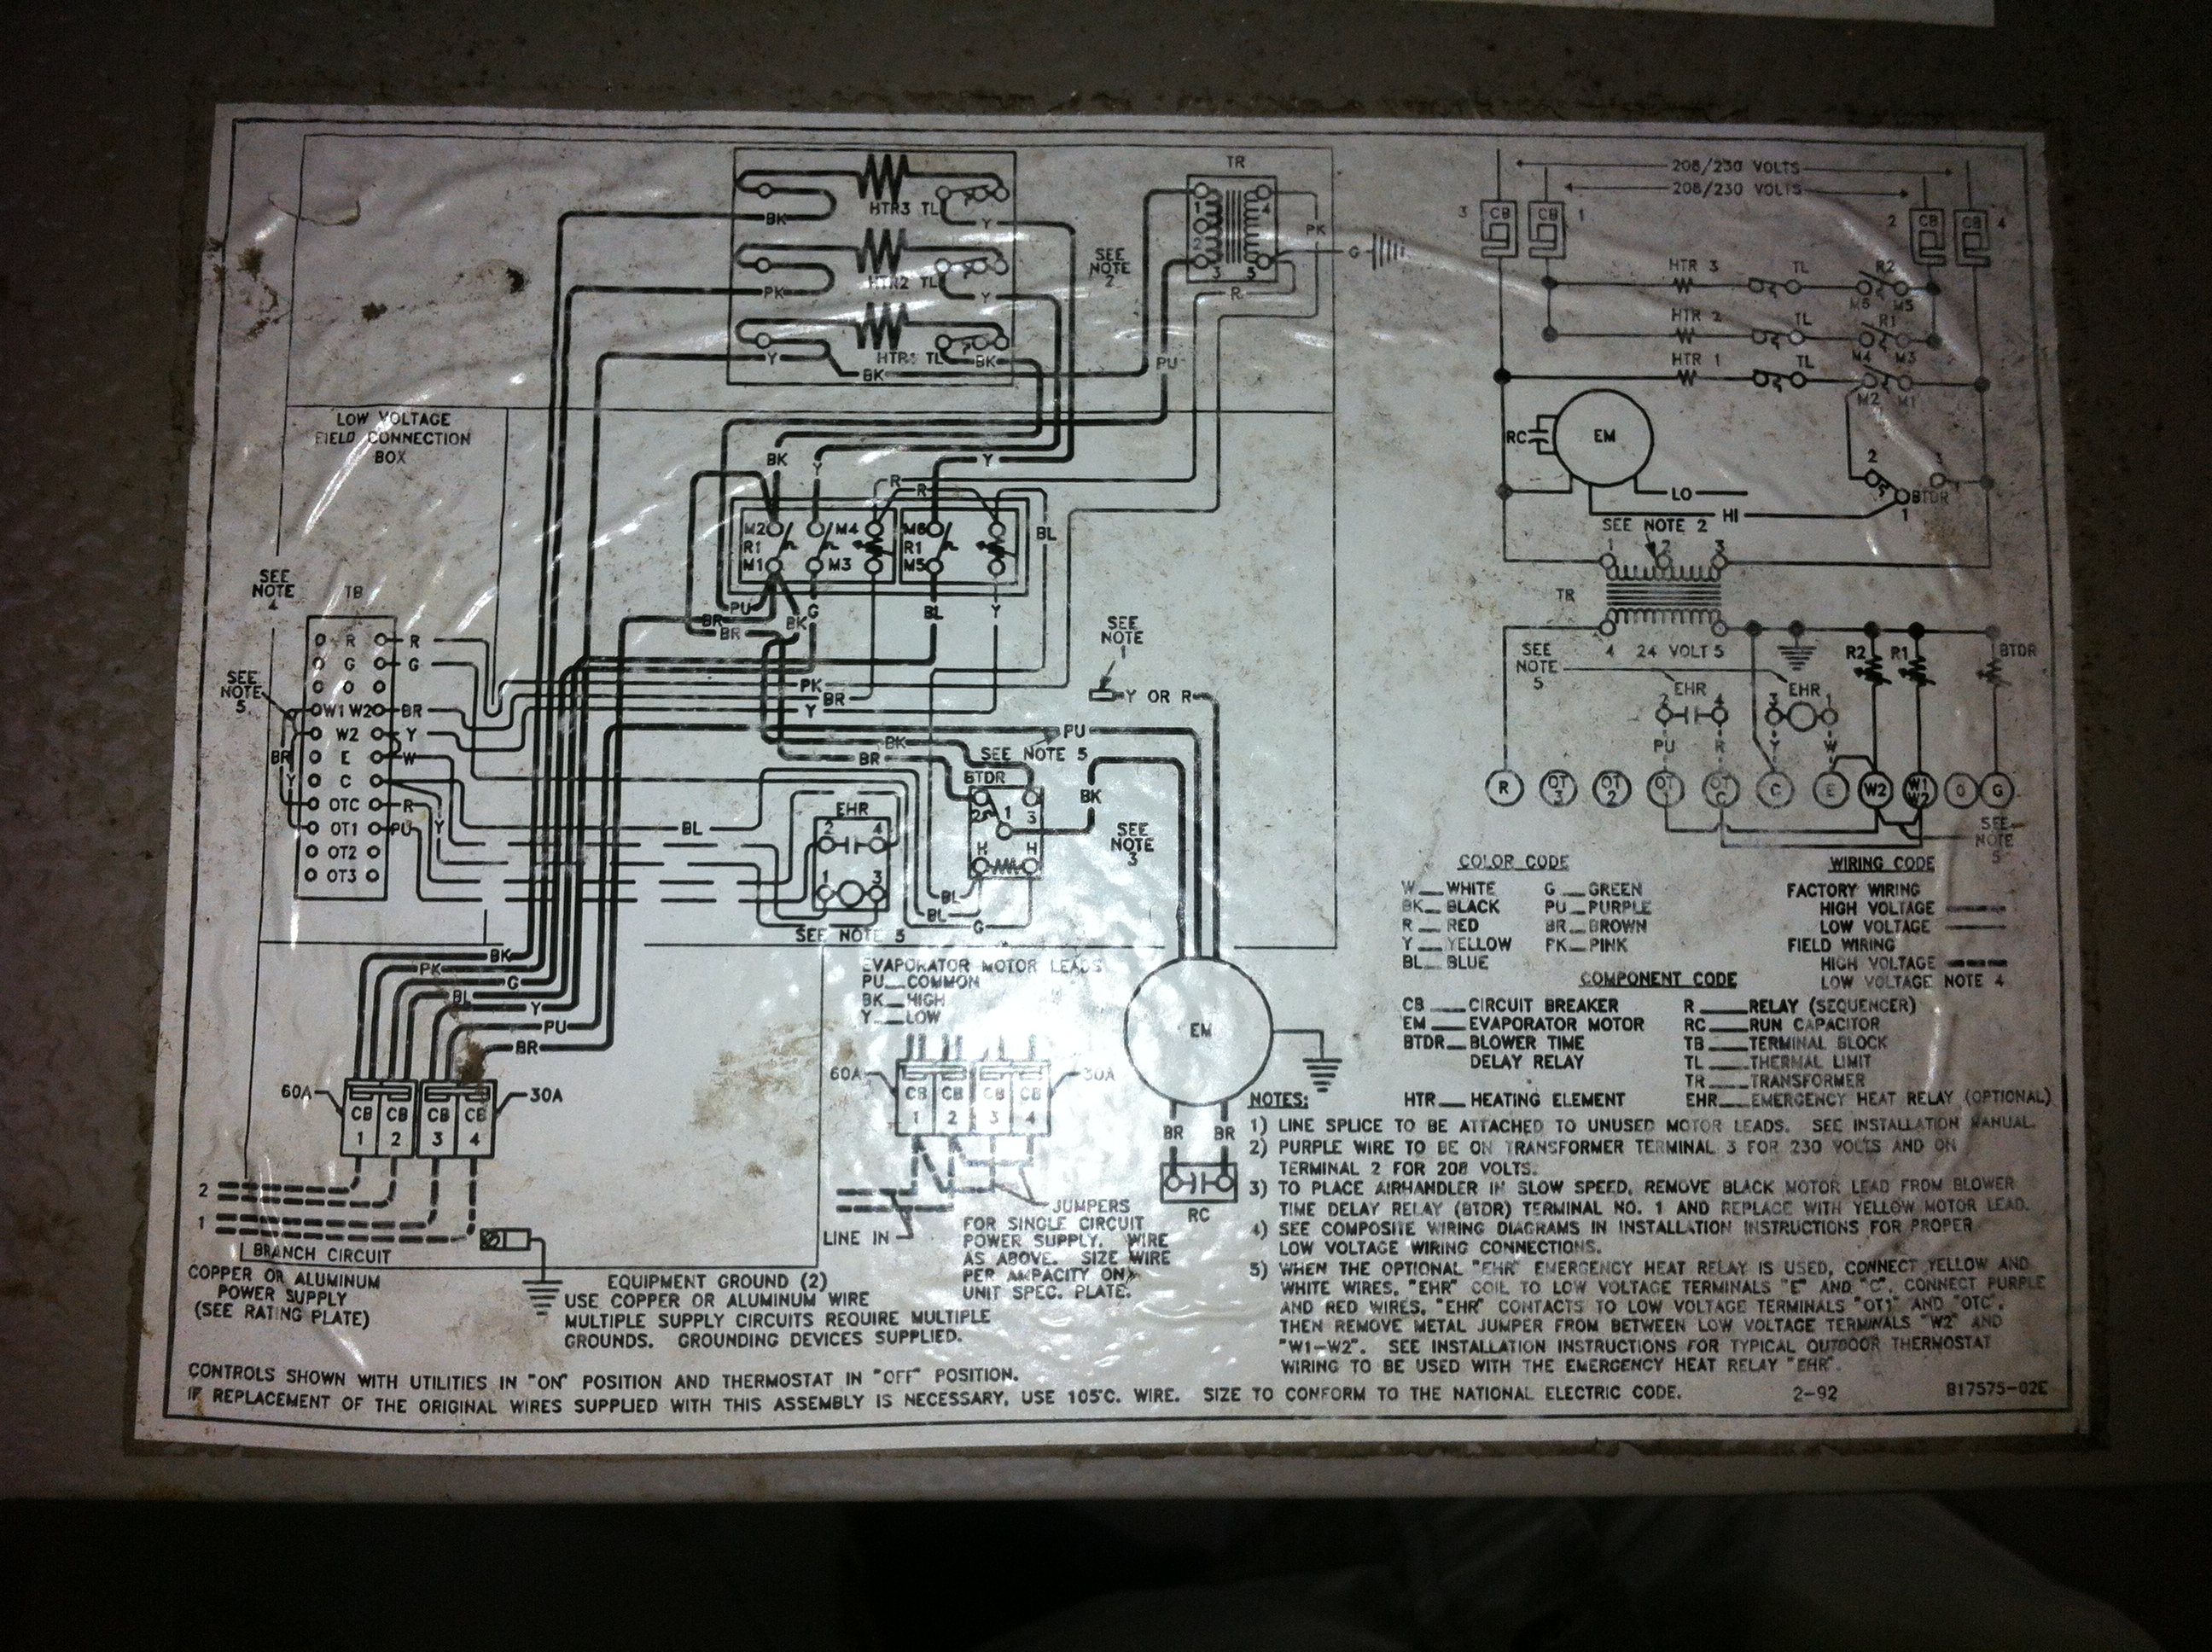 2012 04 15_010529_img_0035 attempting to troubleshoot heatpump a c troubles this is goodman a30-15 wiring diagram at soozxer.org